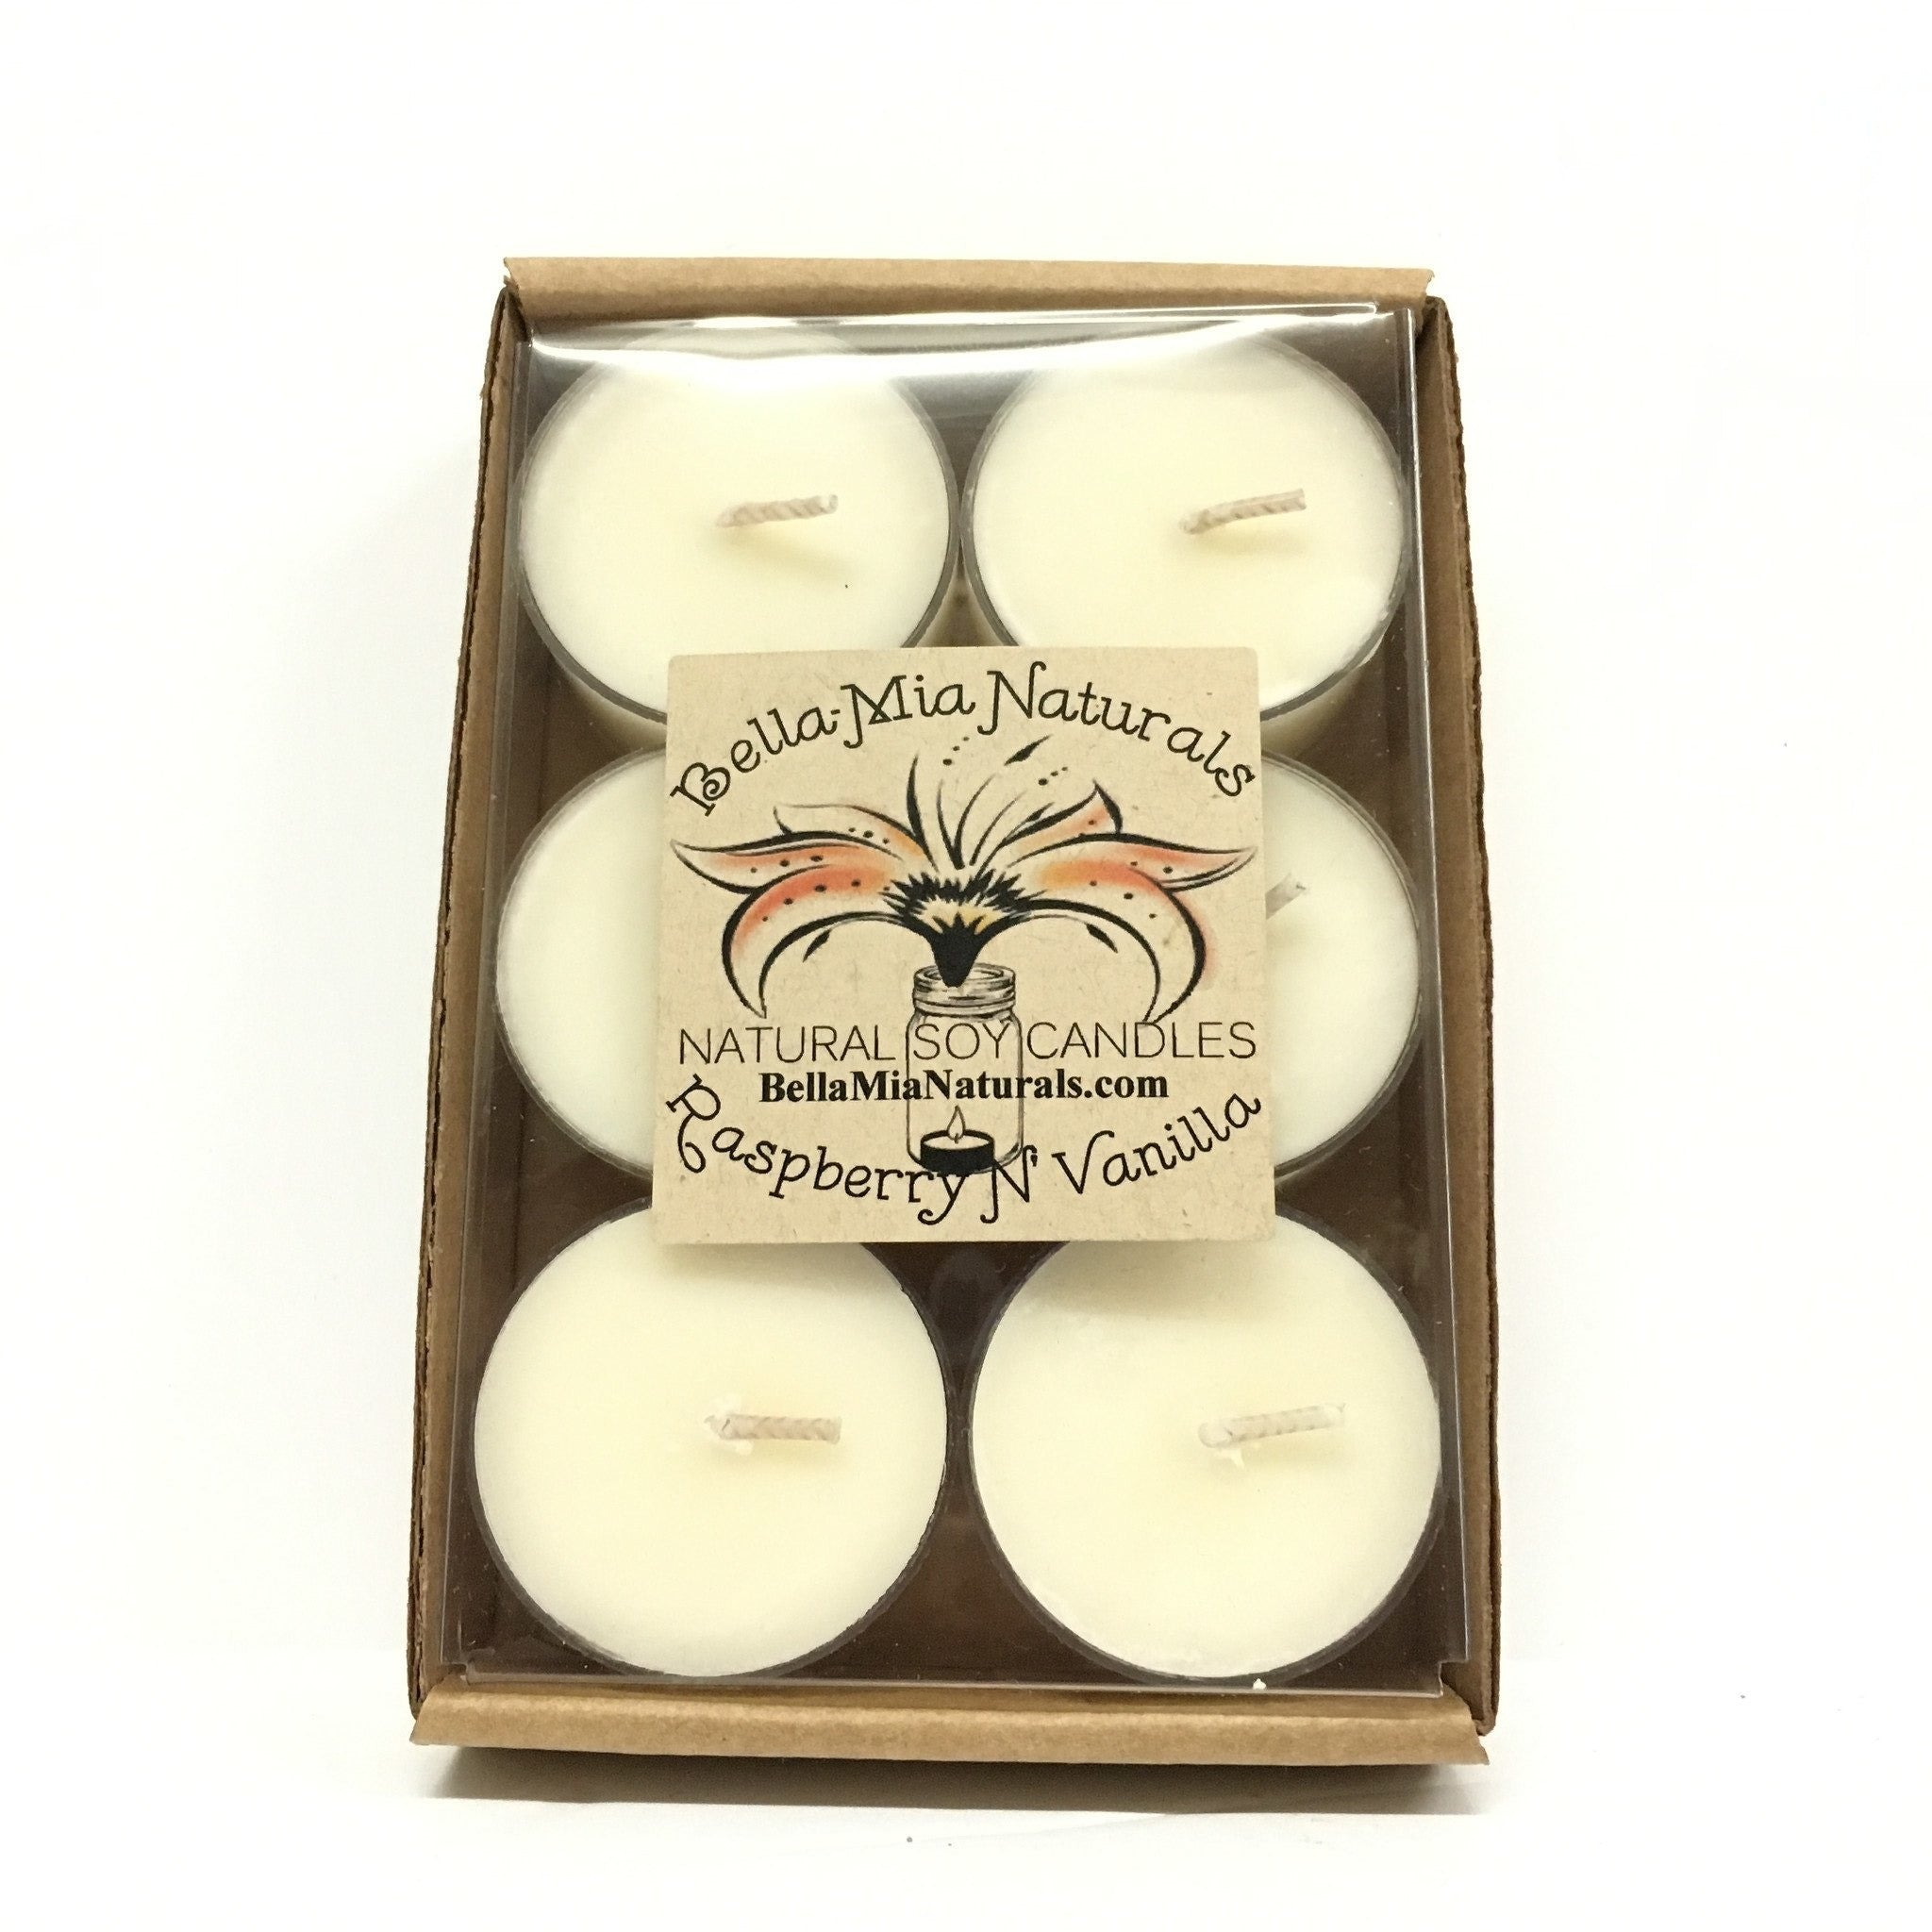 Raspberry N' Vanilla Natural Hand Poured Soy Candles - Tealight-6 Pack - Bella-Mia Naturals All Natural Soy Candles & Lip Balms - 3